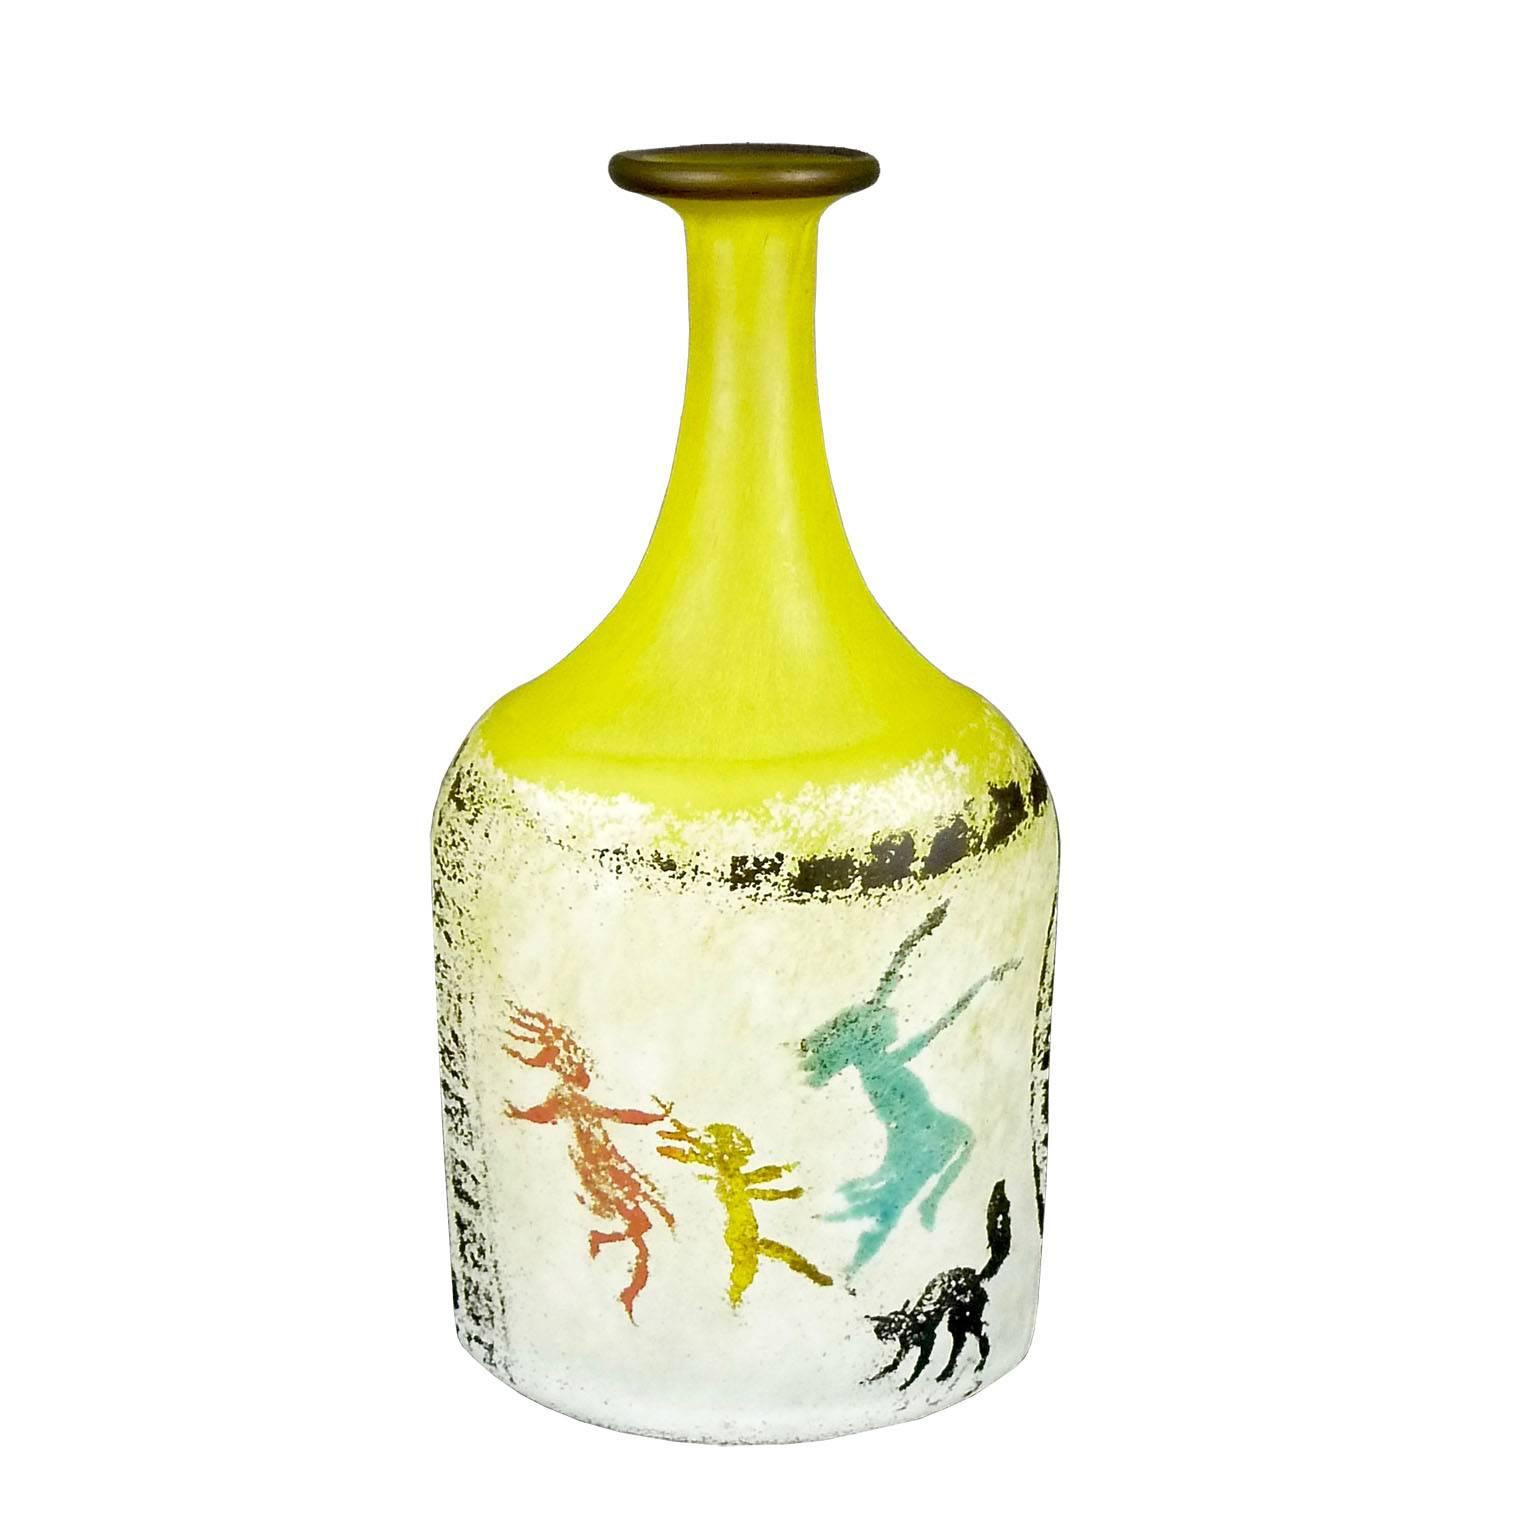 Kosta Boda Glass Vase Of Swedish Glass Vase by Designer Kjell Engman for Sale at 1stdibs with Kjell Engman Yellow Bottle 01 Master